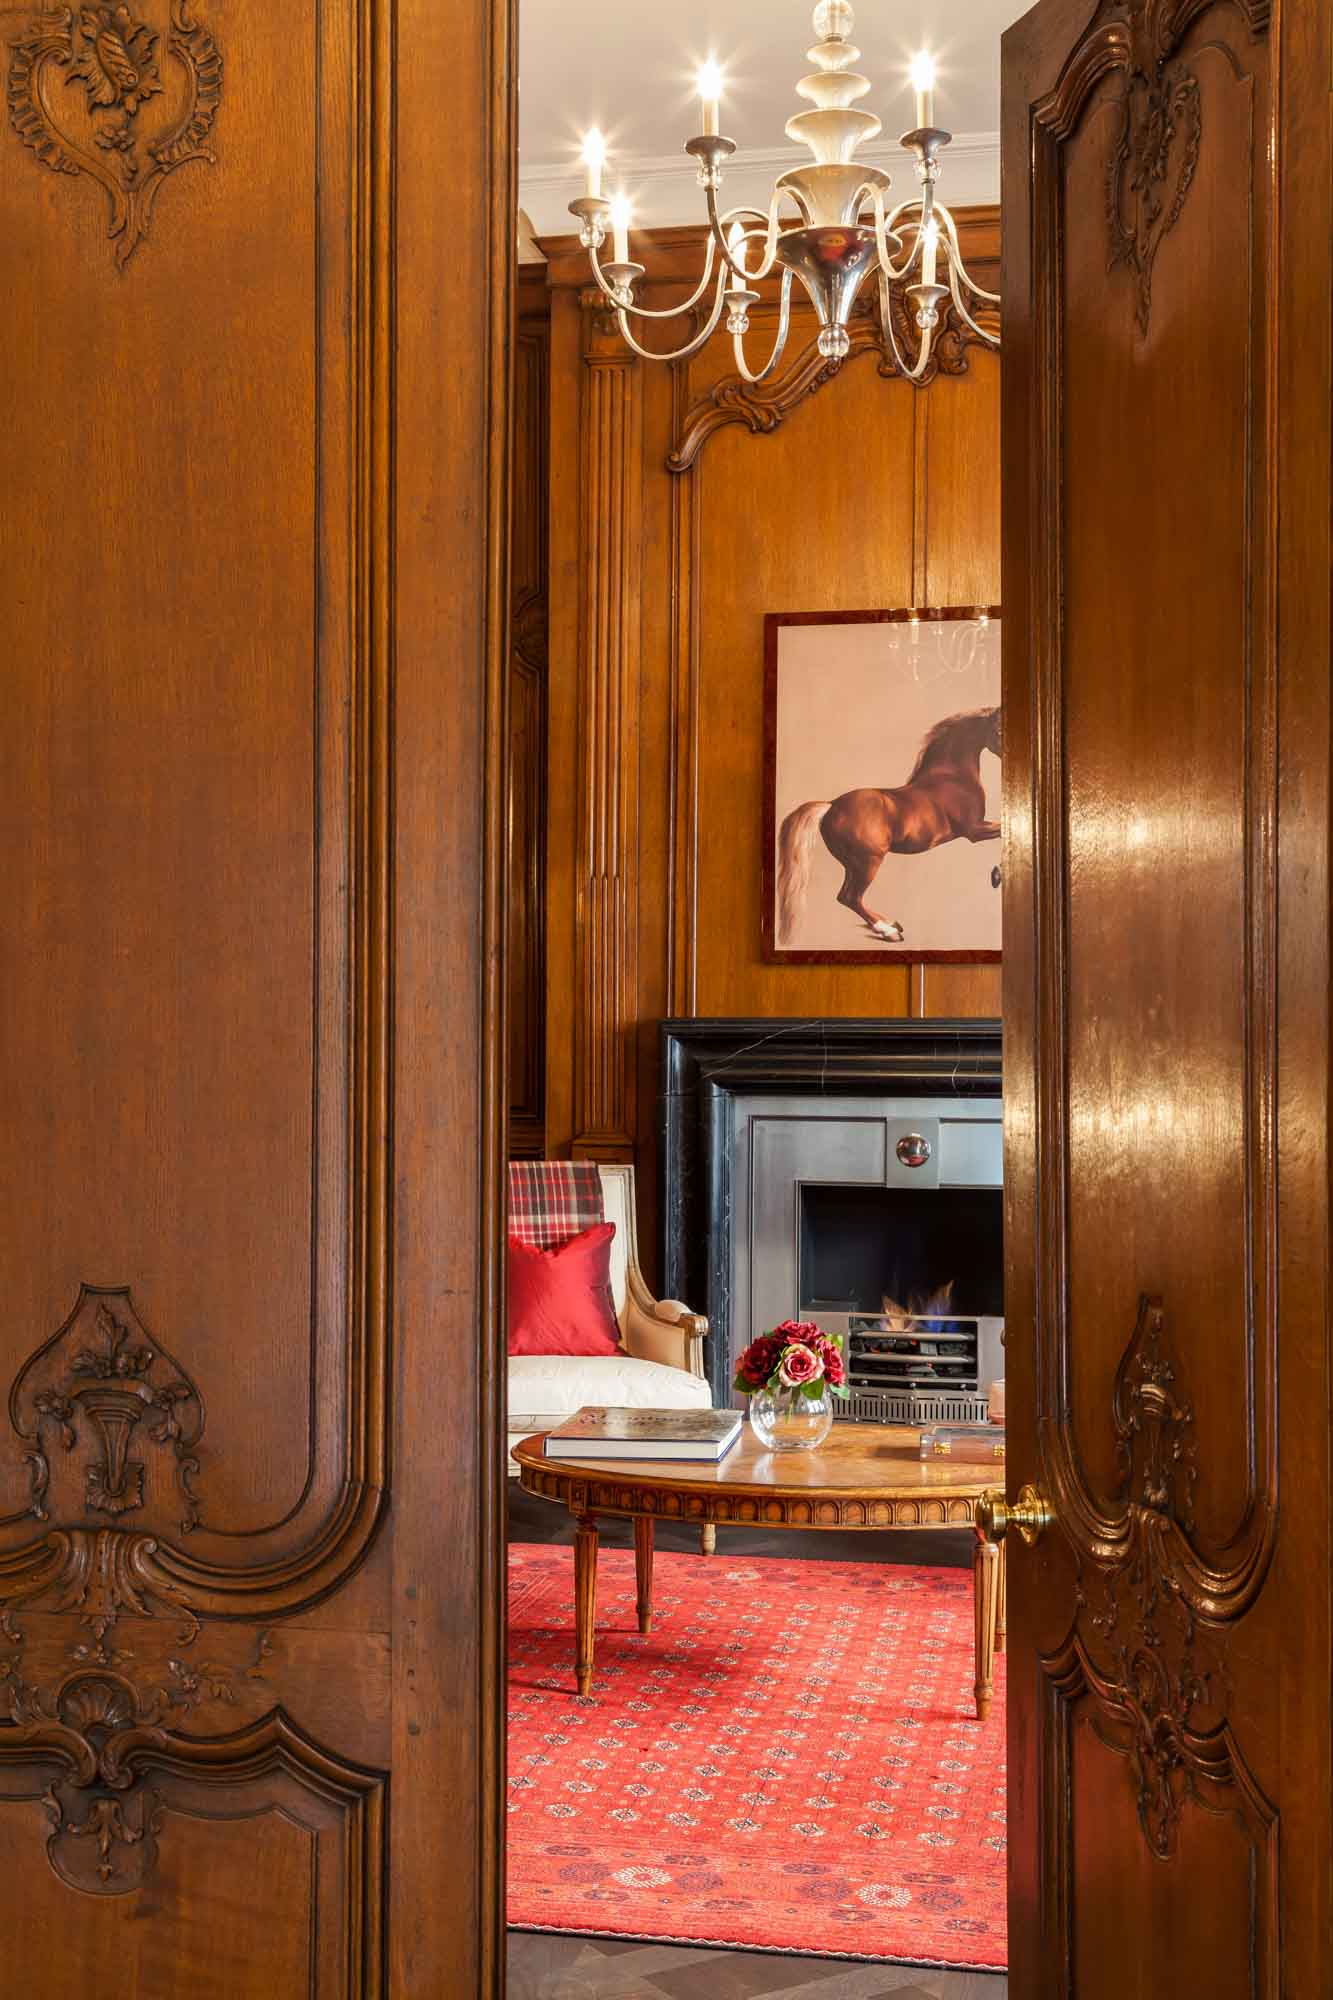 jonathan bond photography, wooden doorway view of living room, hyde park, london